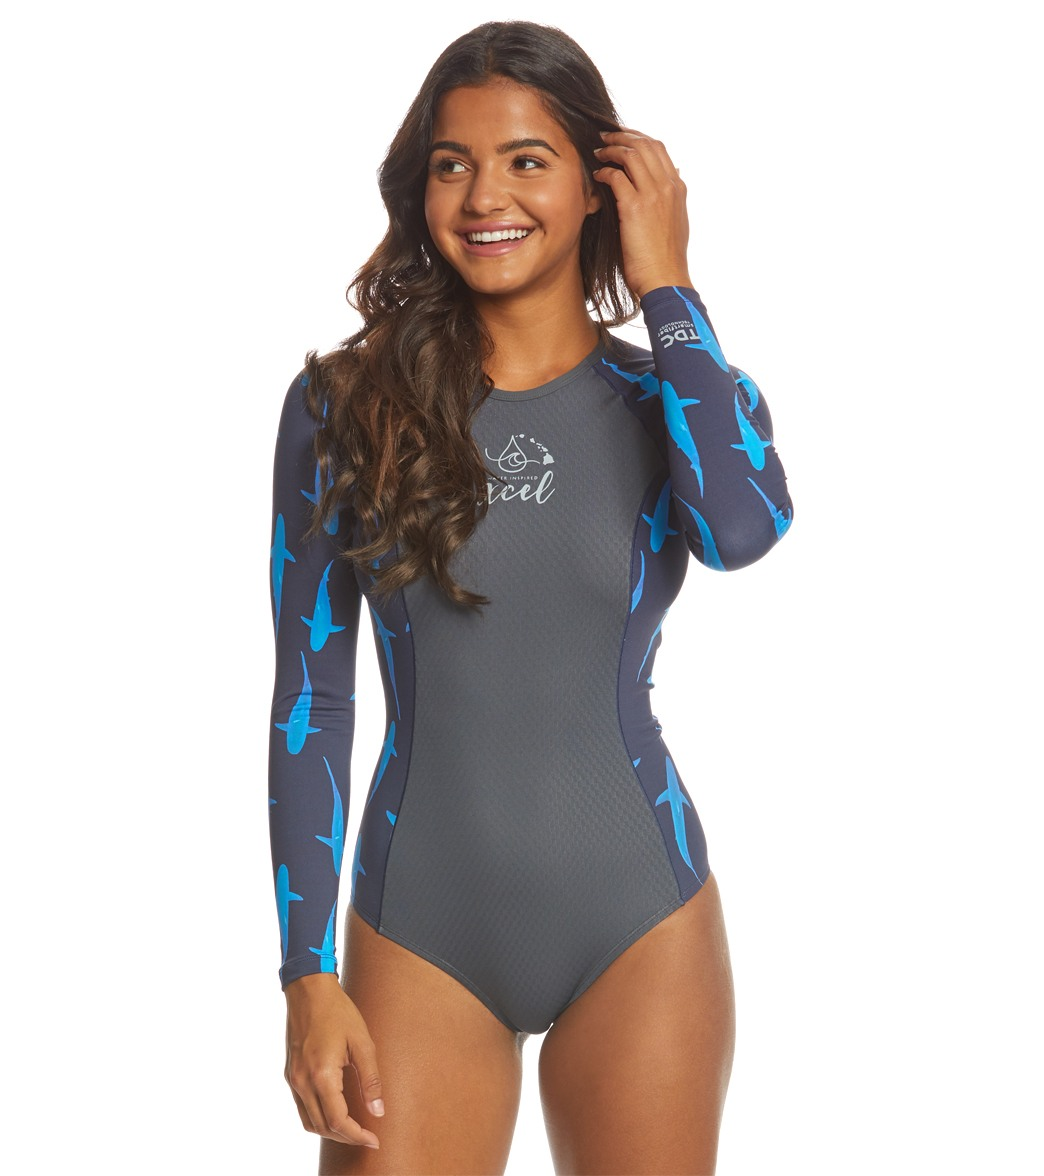 Xcel Women s Ocean Ramsey Drylock Ceilliant Jaquard Long Sleeve Back Zip  Spring Suit at SwimOutlet.com - Free Shipping ef95b4fd8